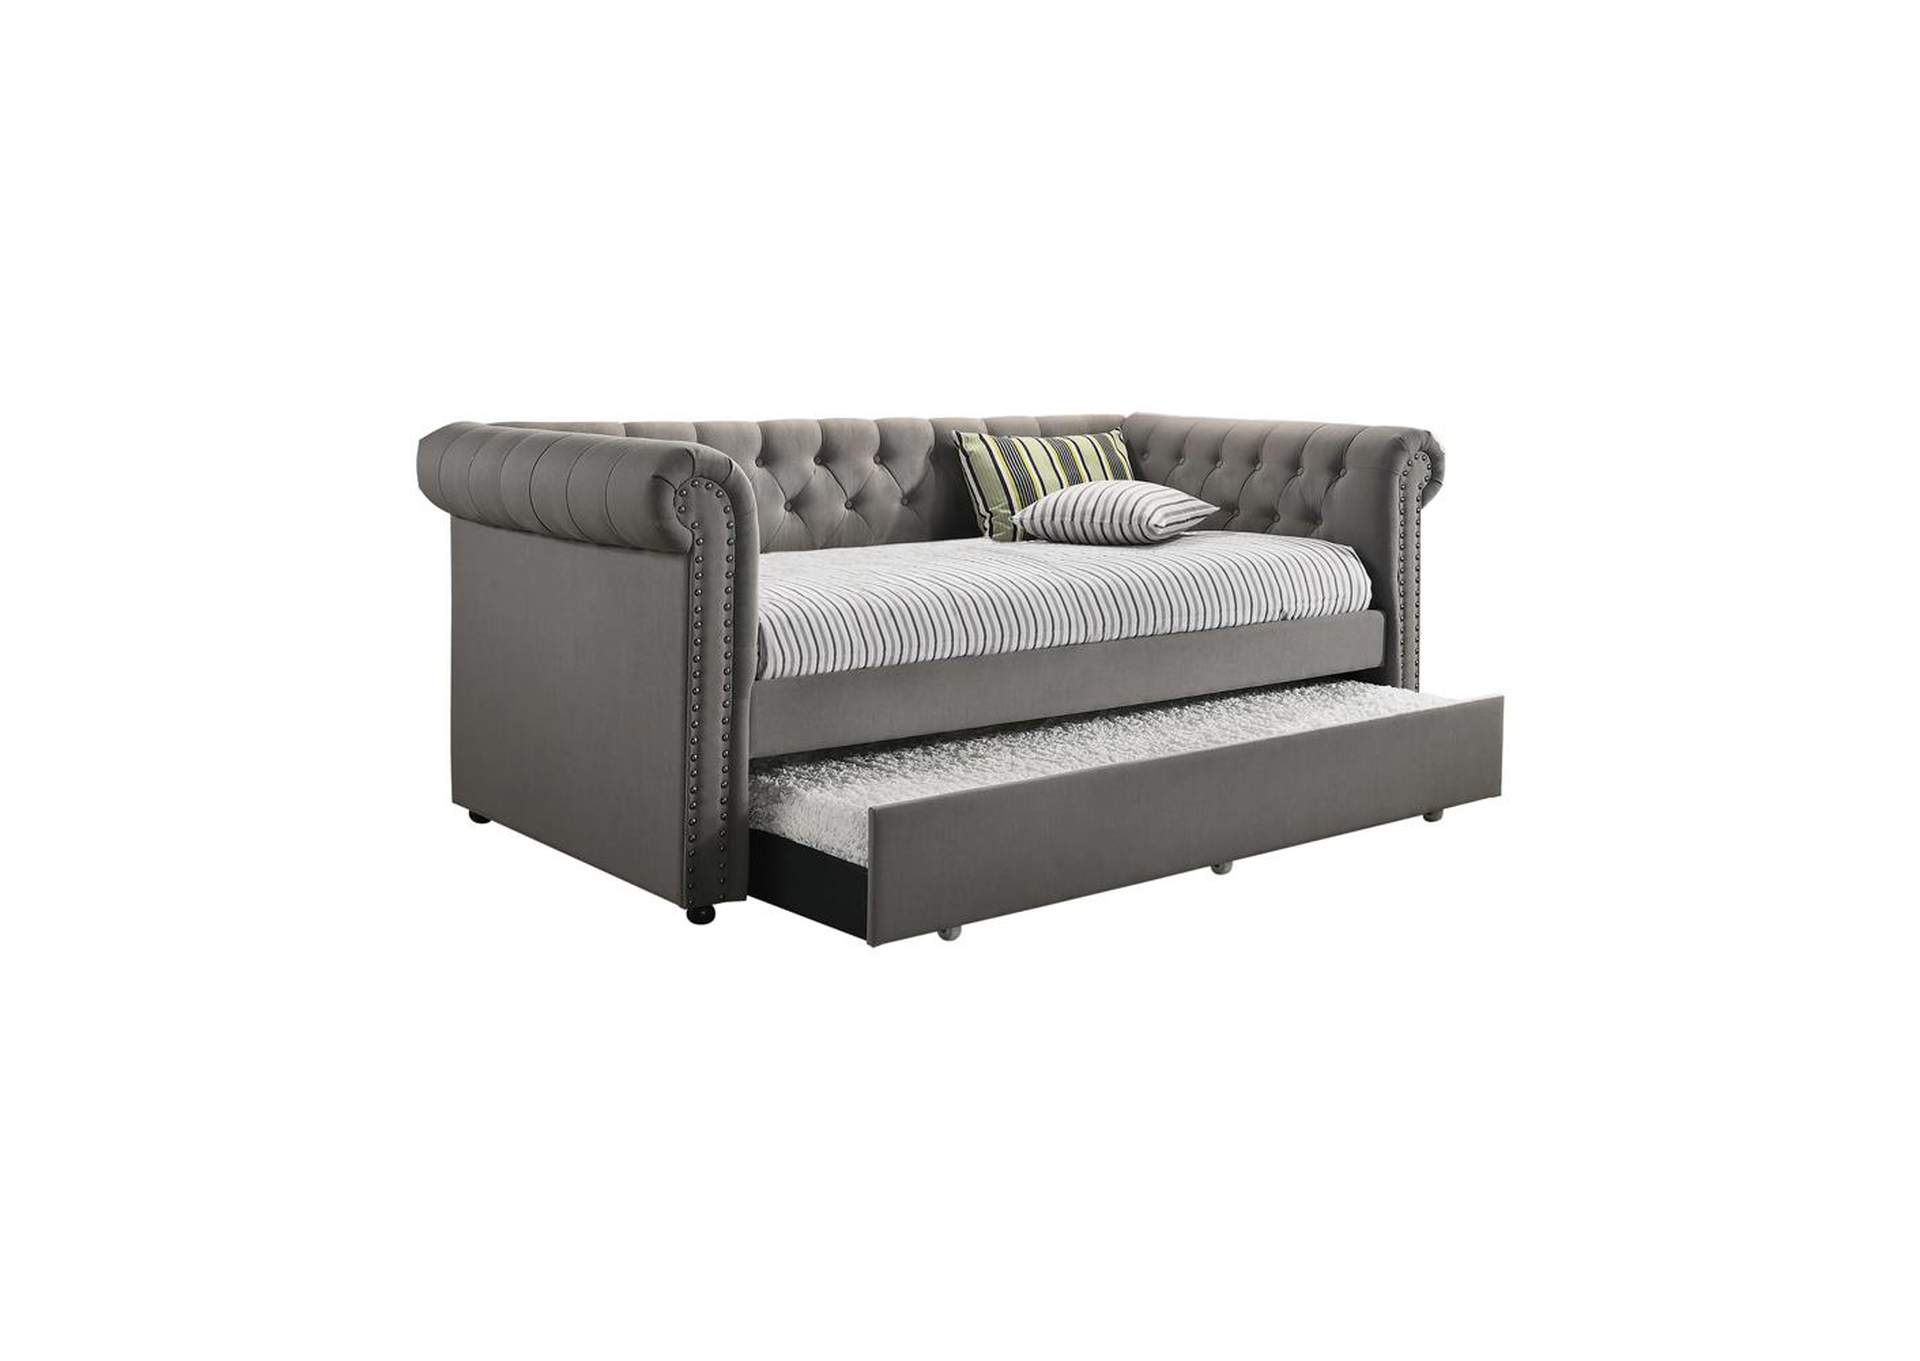 Ironside Gray Kepner Grey Chesterfield Daybed,Coaster Furniture